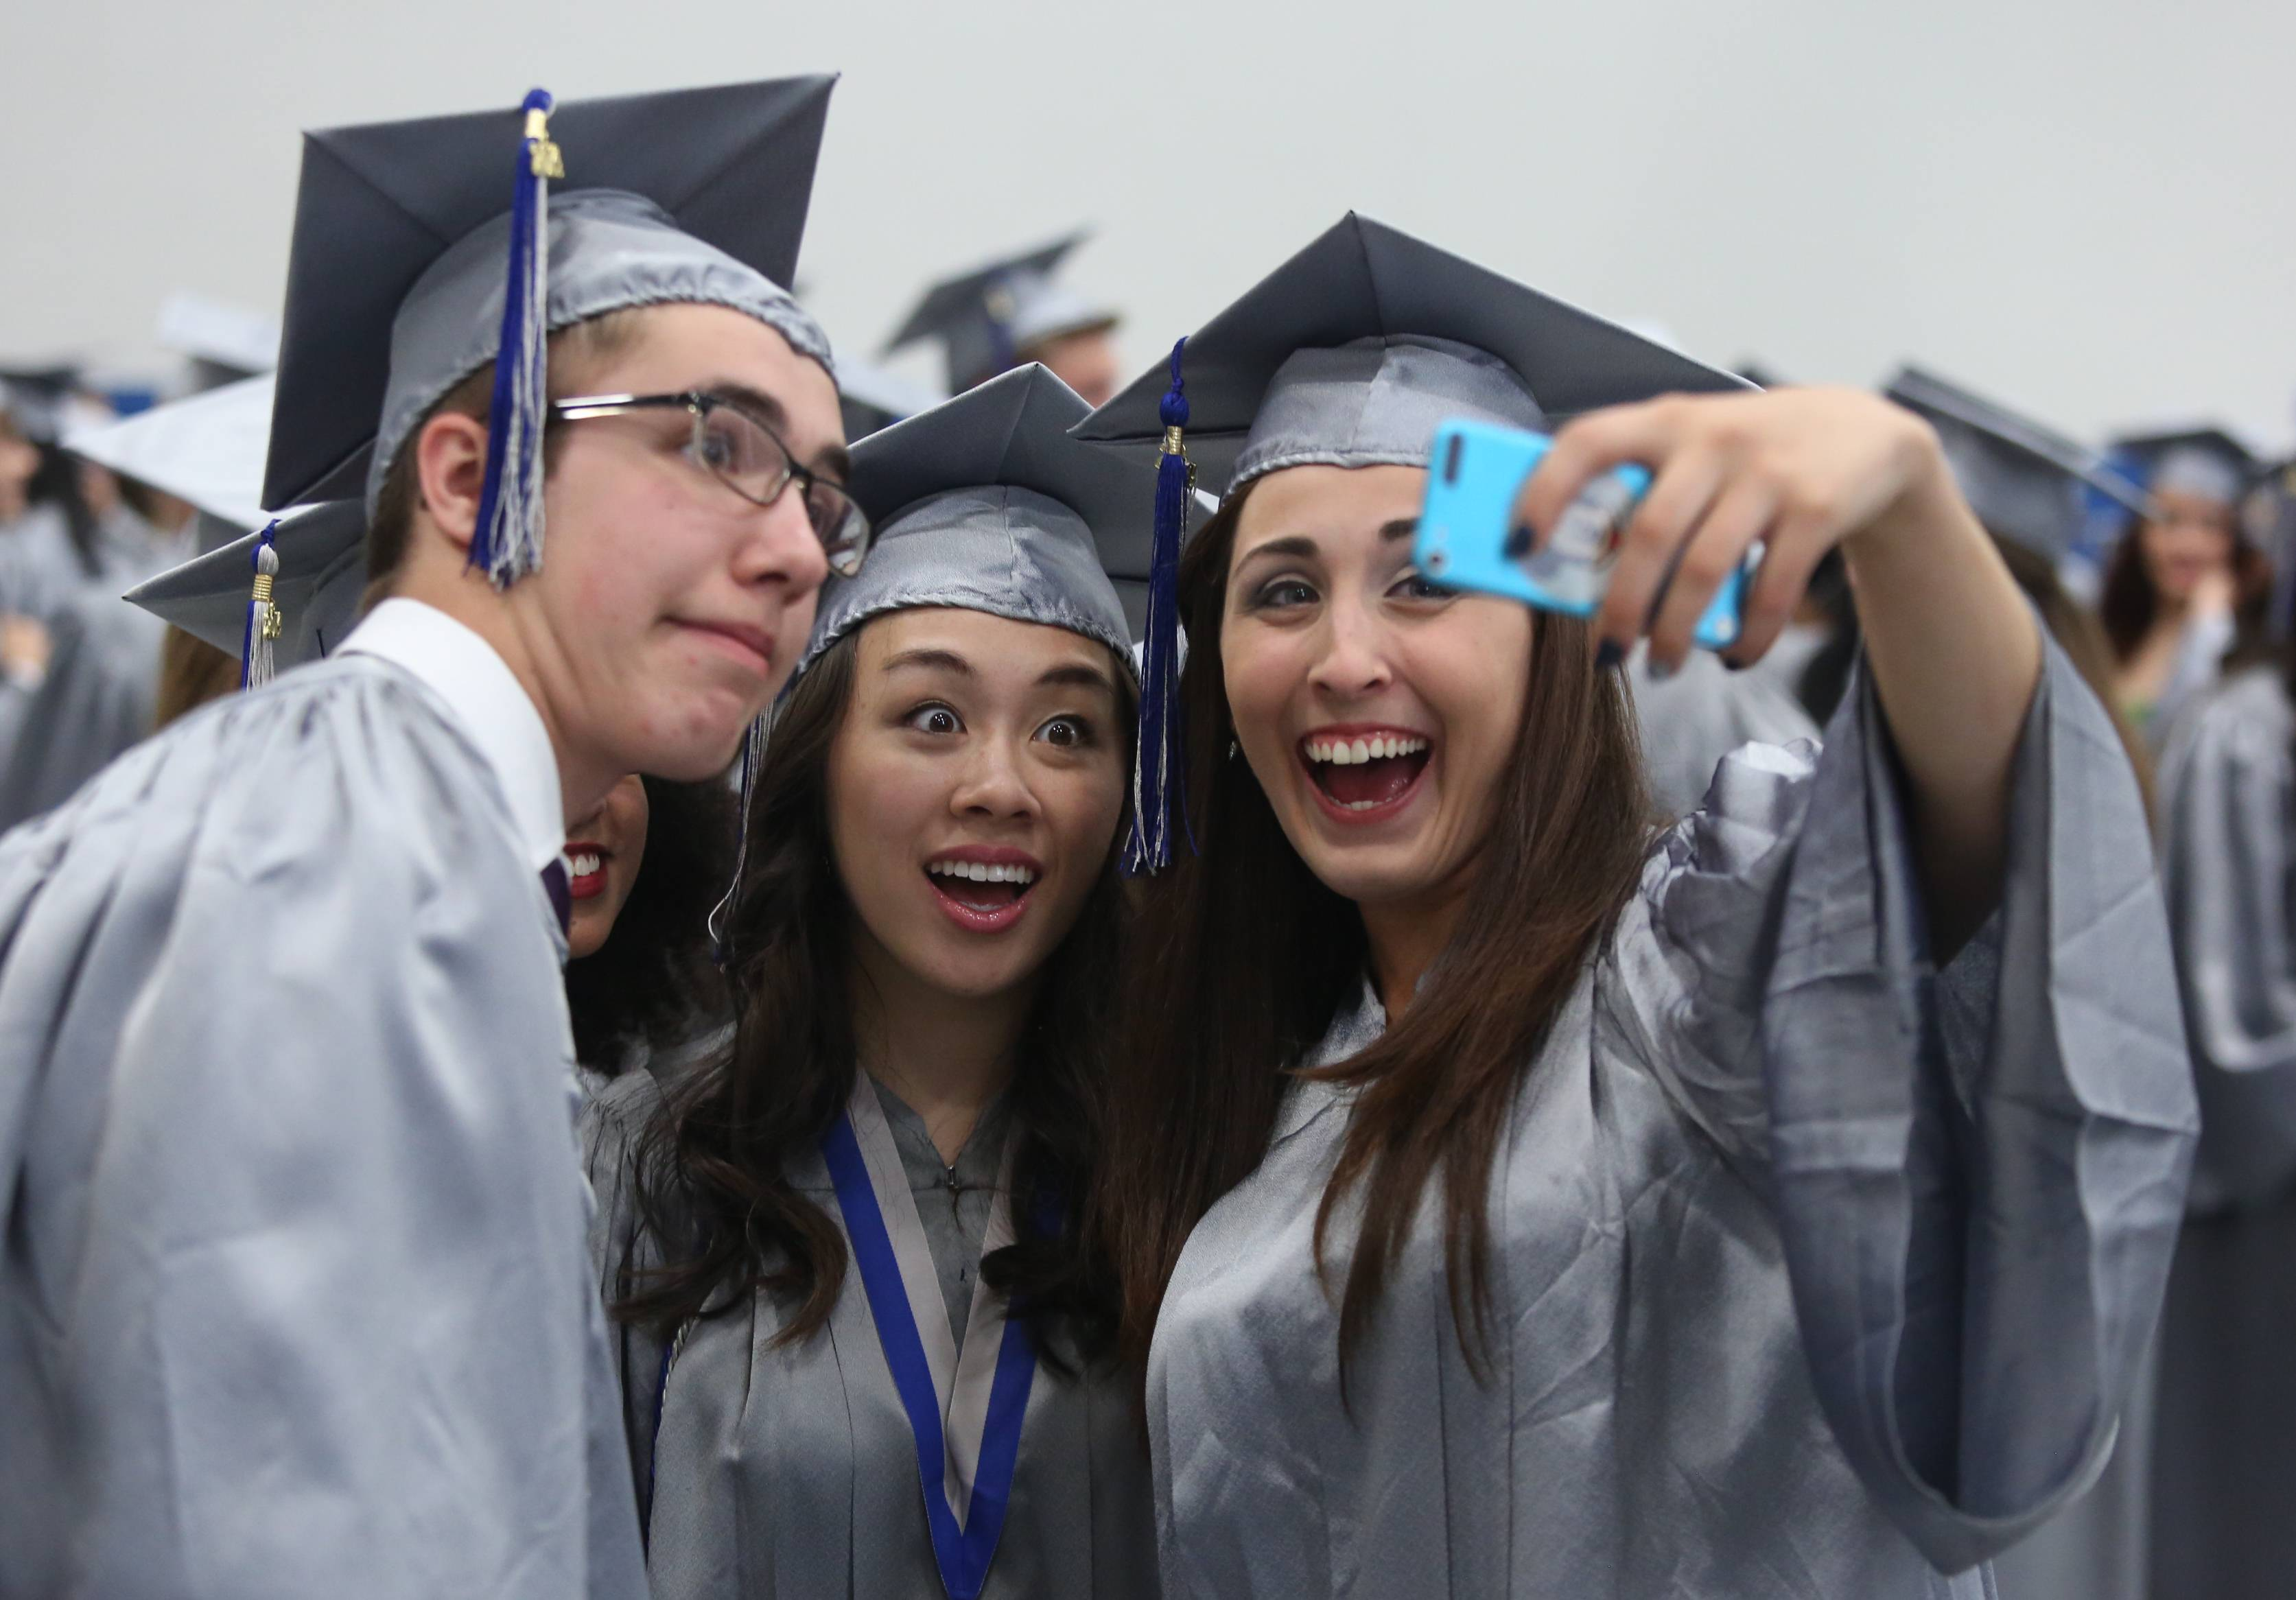 Images from the Vernon Hills High School graduation on Thursday, June 5 at the school in Vernon Hills.